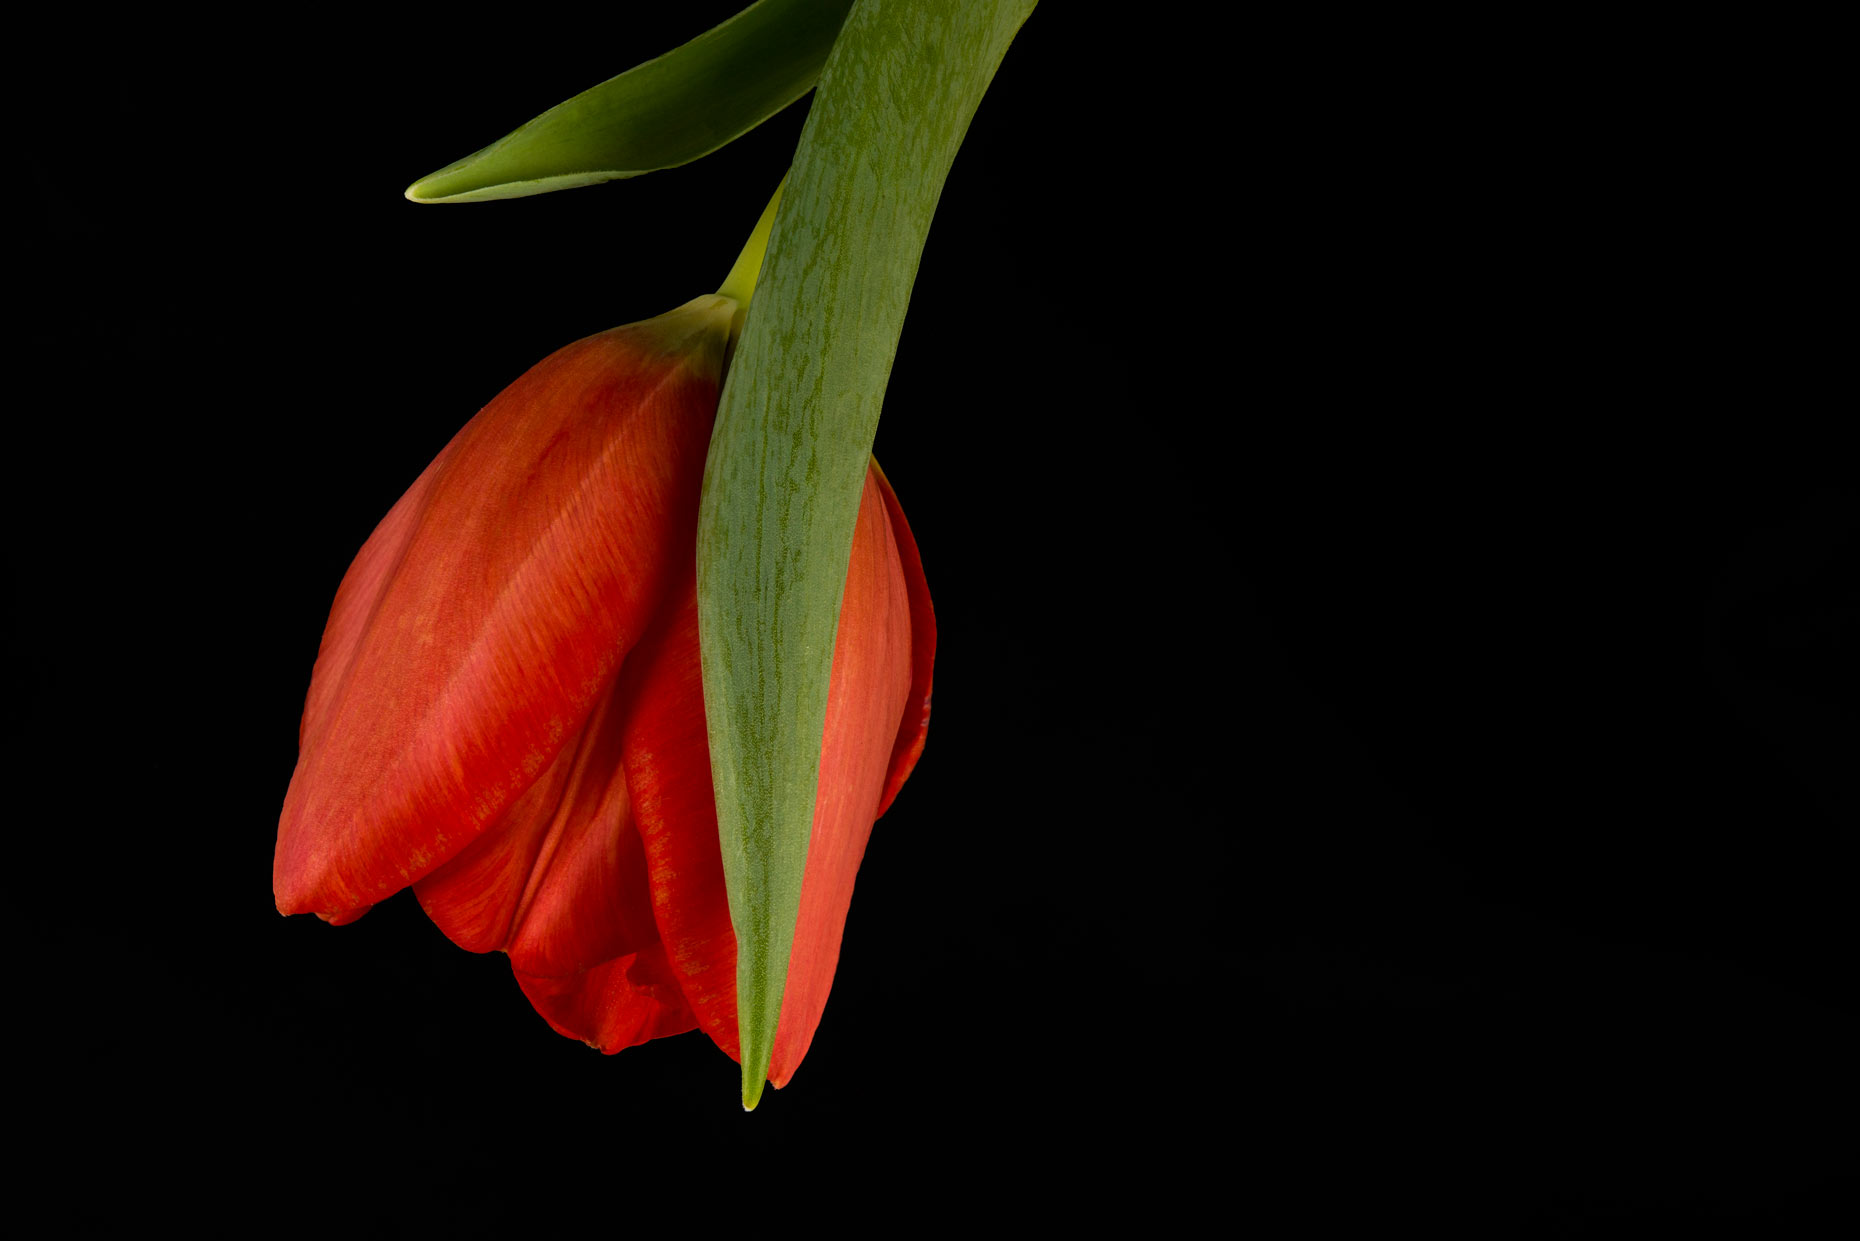 Fine Art Photograph Focus Stacking Tulip Review